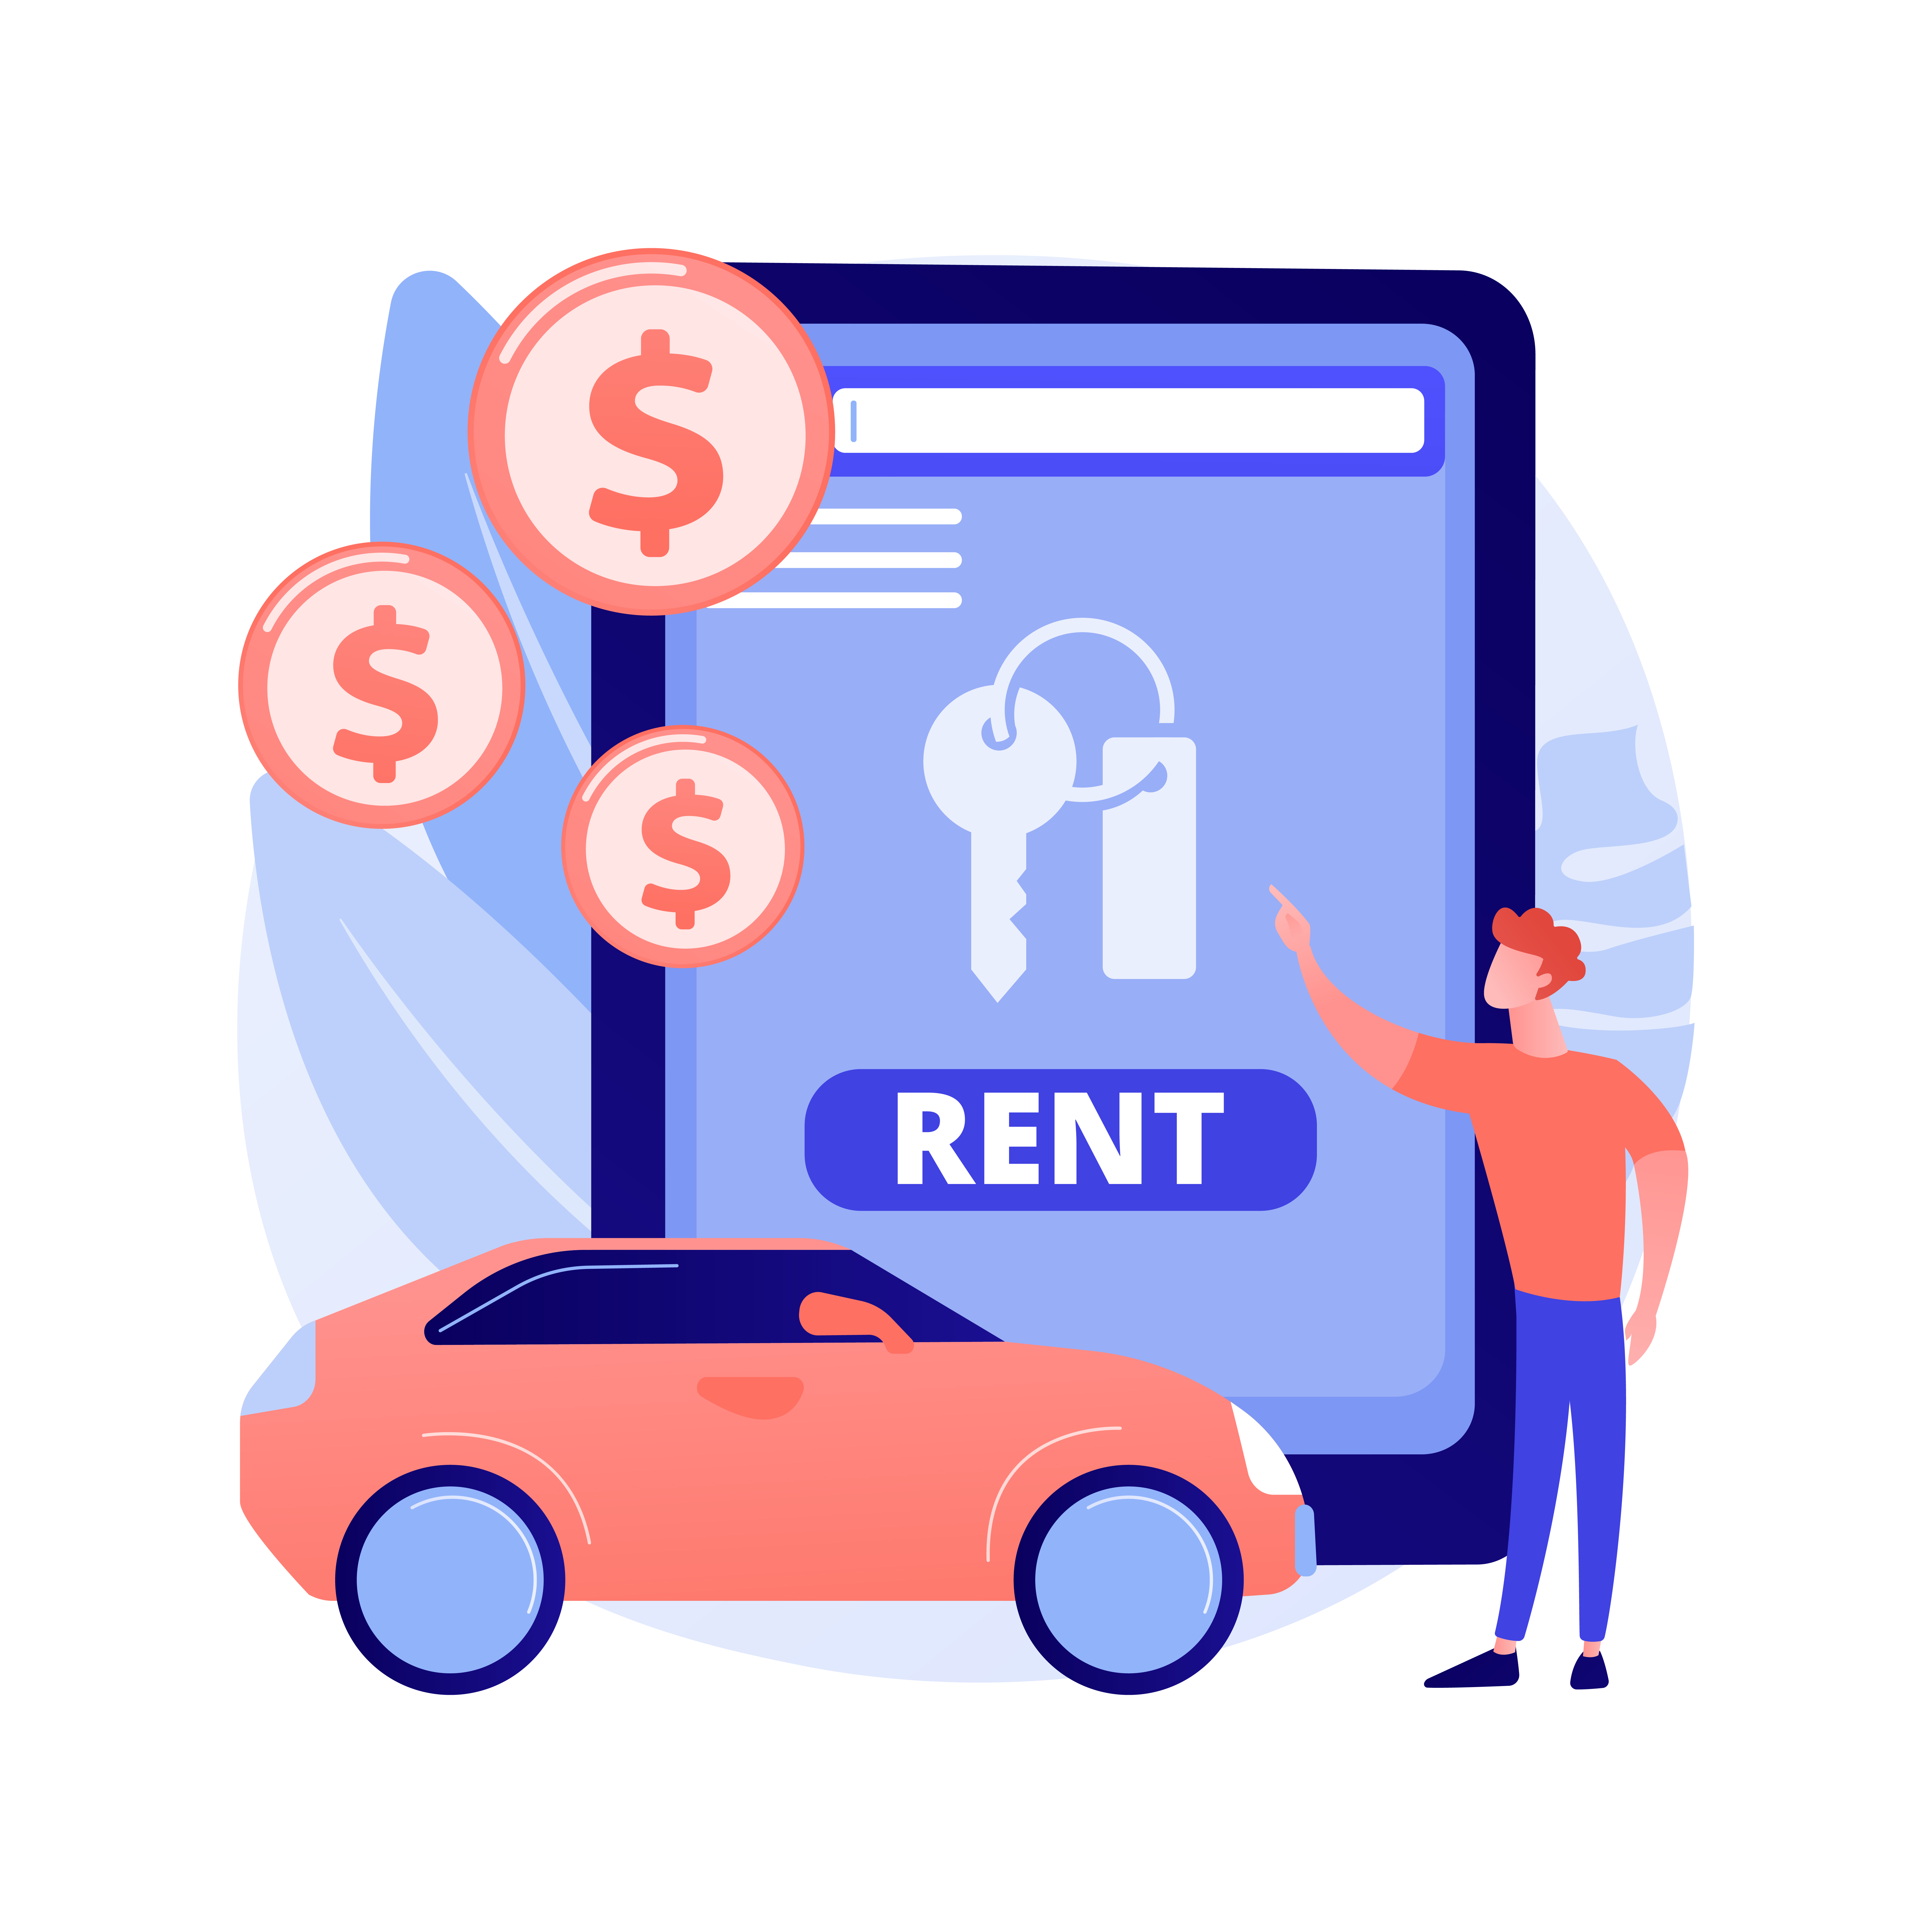 Upgrade Car Rental Systems Through Technology Man Renting Car from Car Rental Services Provider